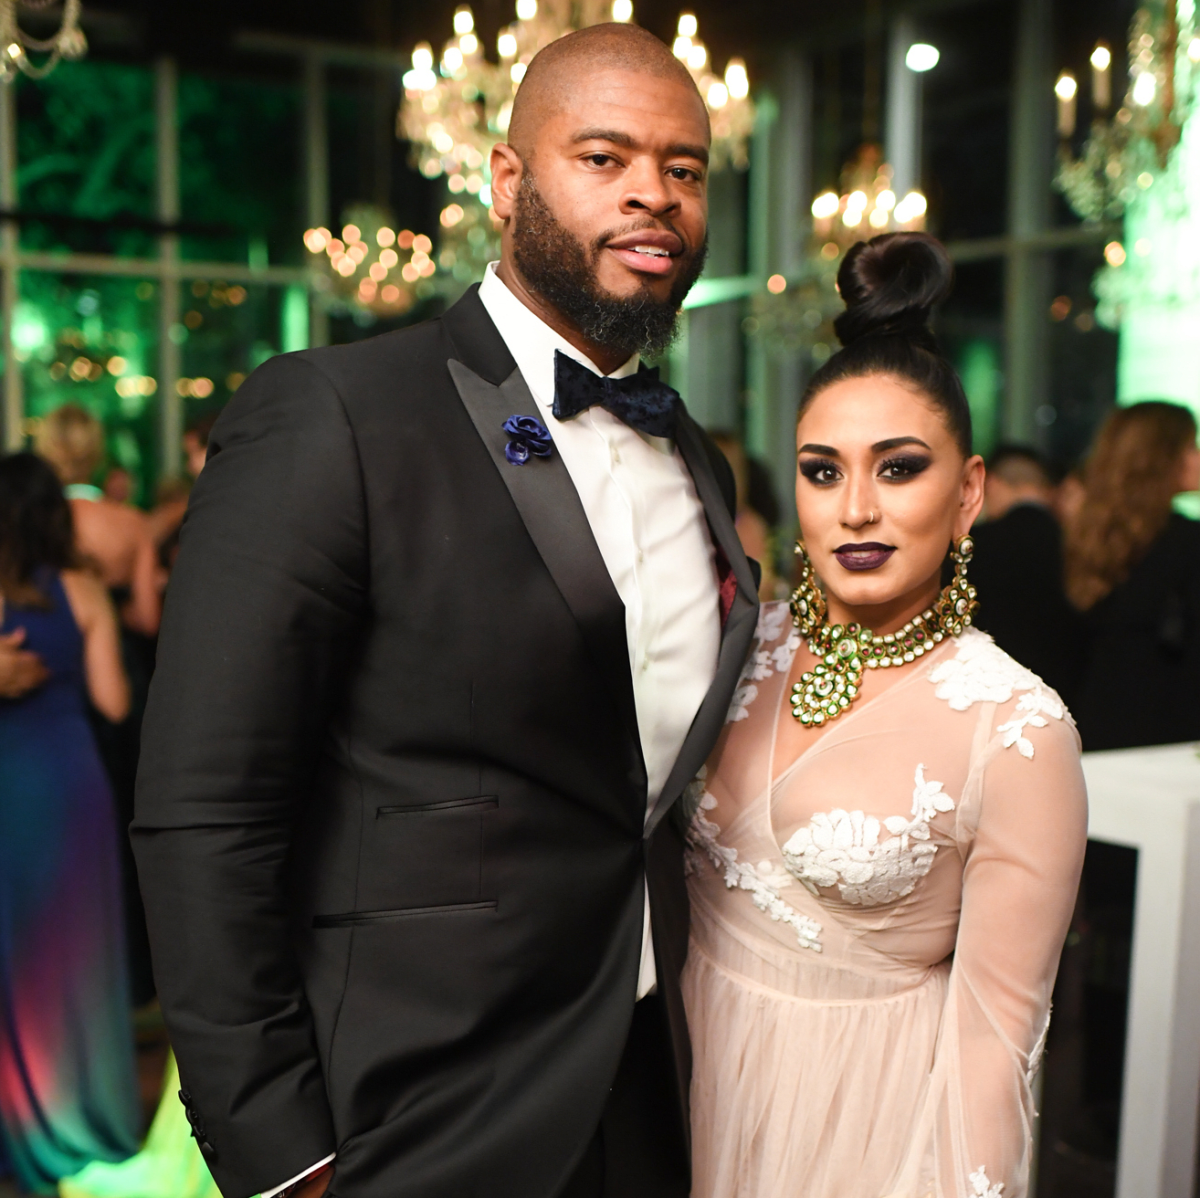 Houston, Jungle Book Gala, Sept. 2017, Wade Smith, Neera Patidar